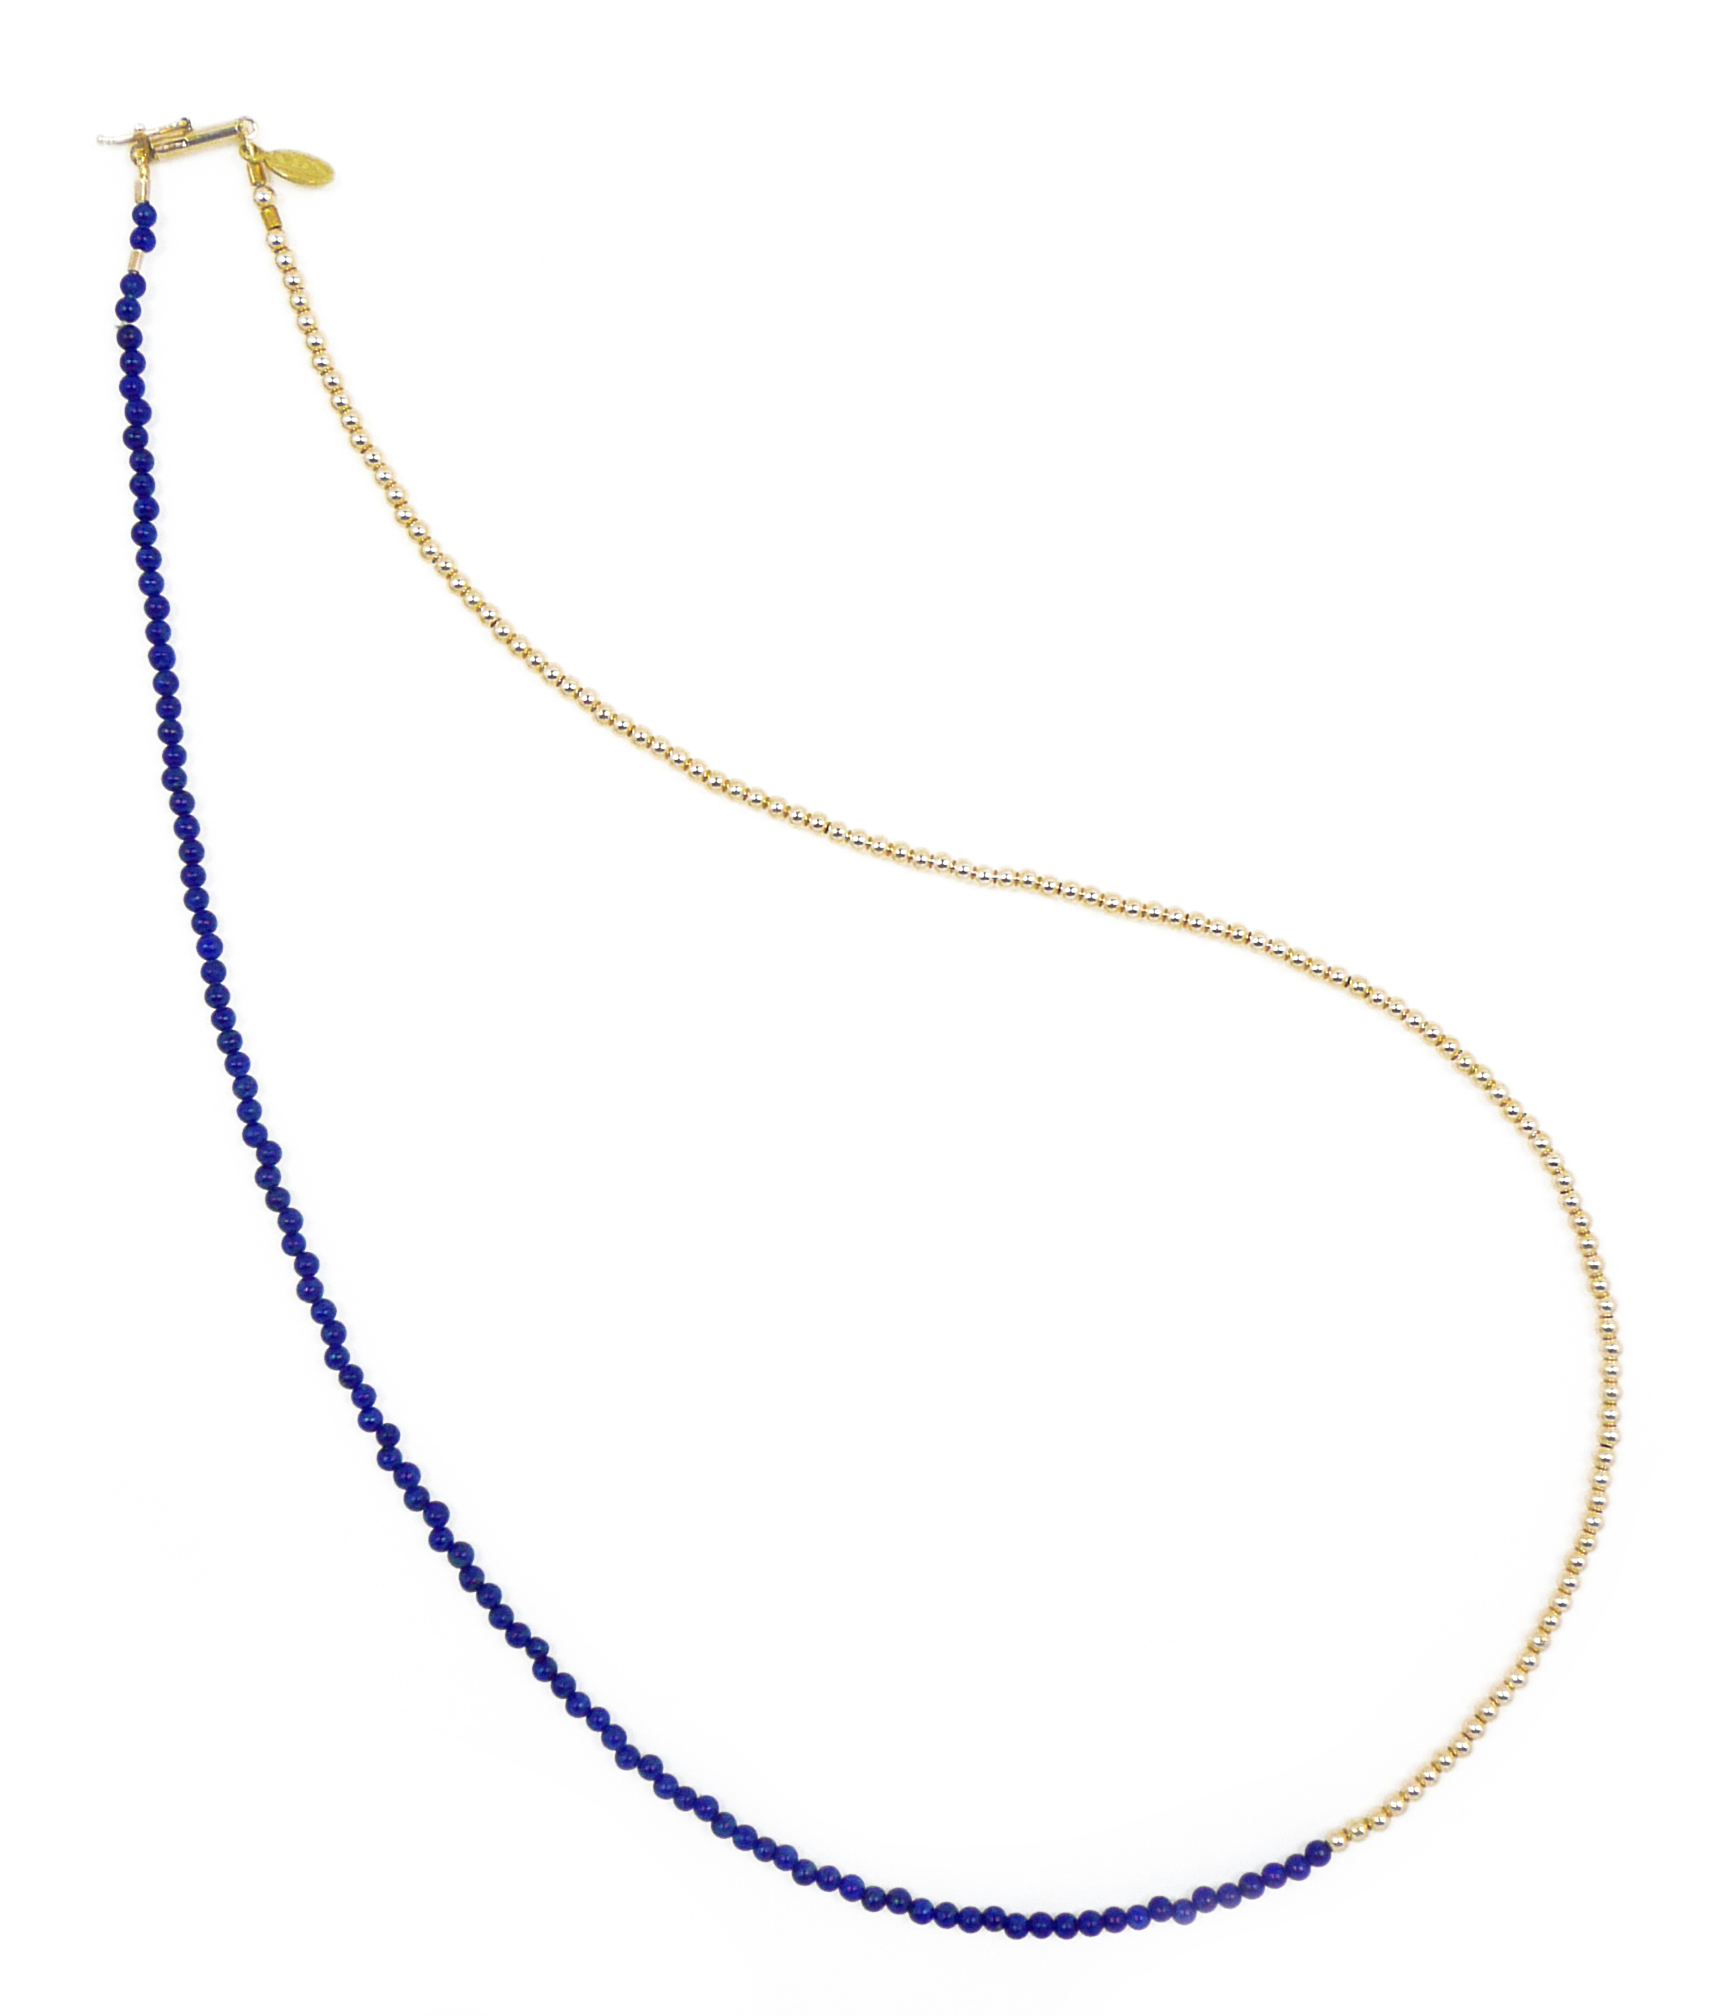 Delicate Lapis Lazuli and Gold Bead Necklace Jewelry by Nektar De Stagni May also be worn as bracelet